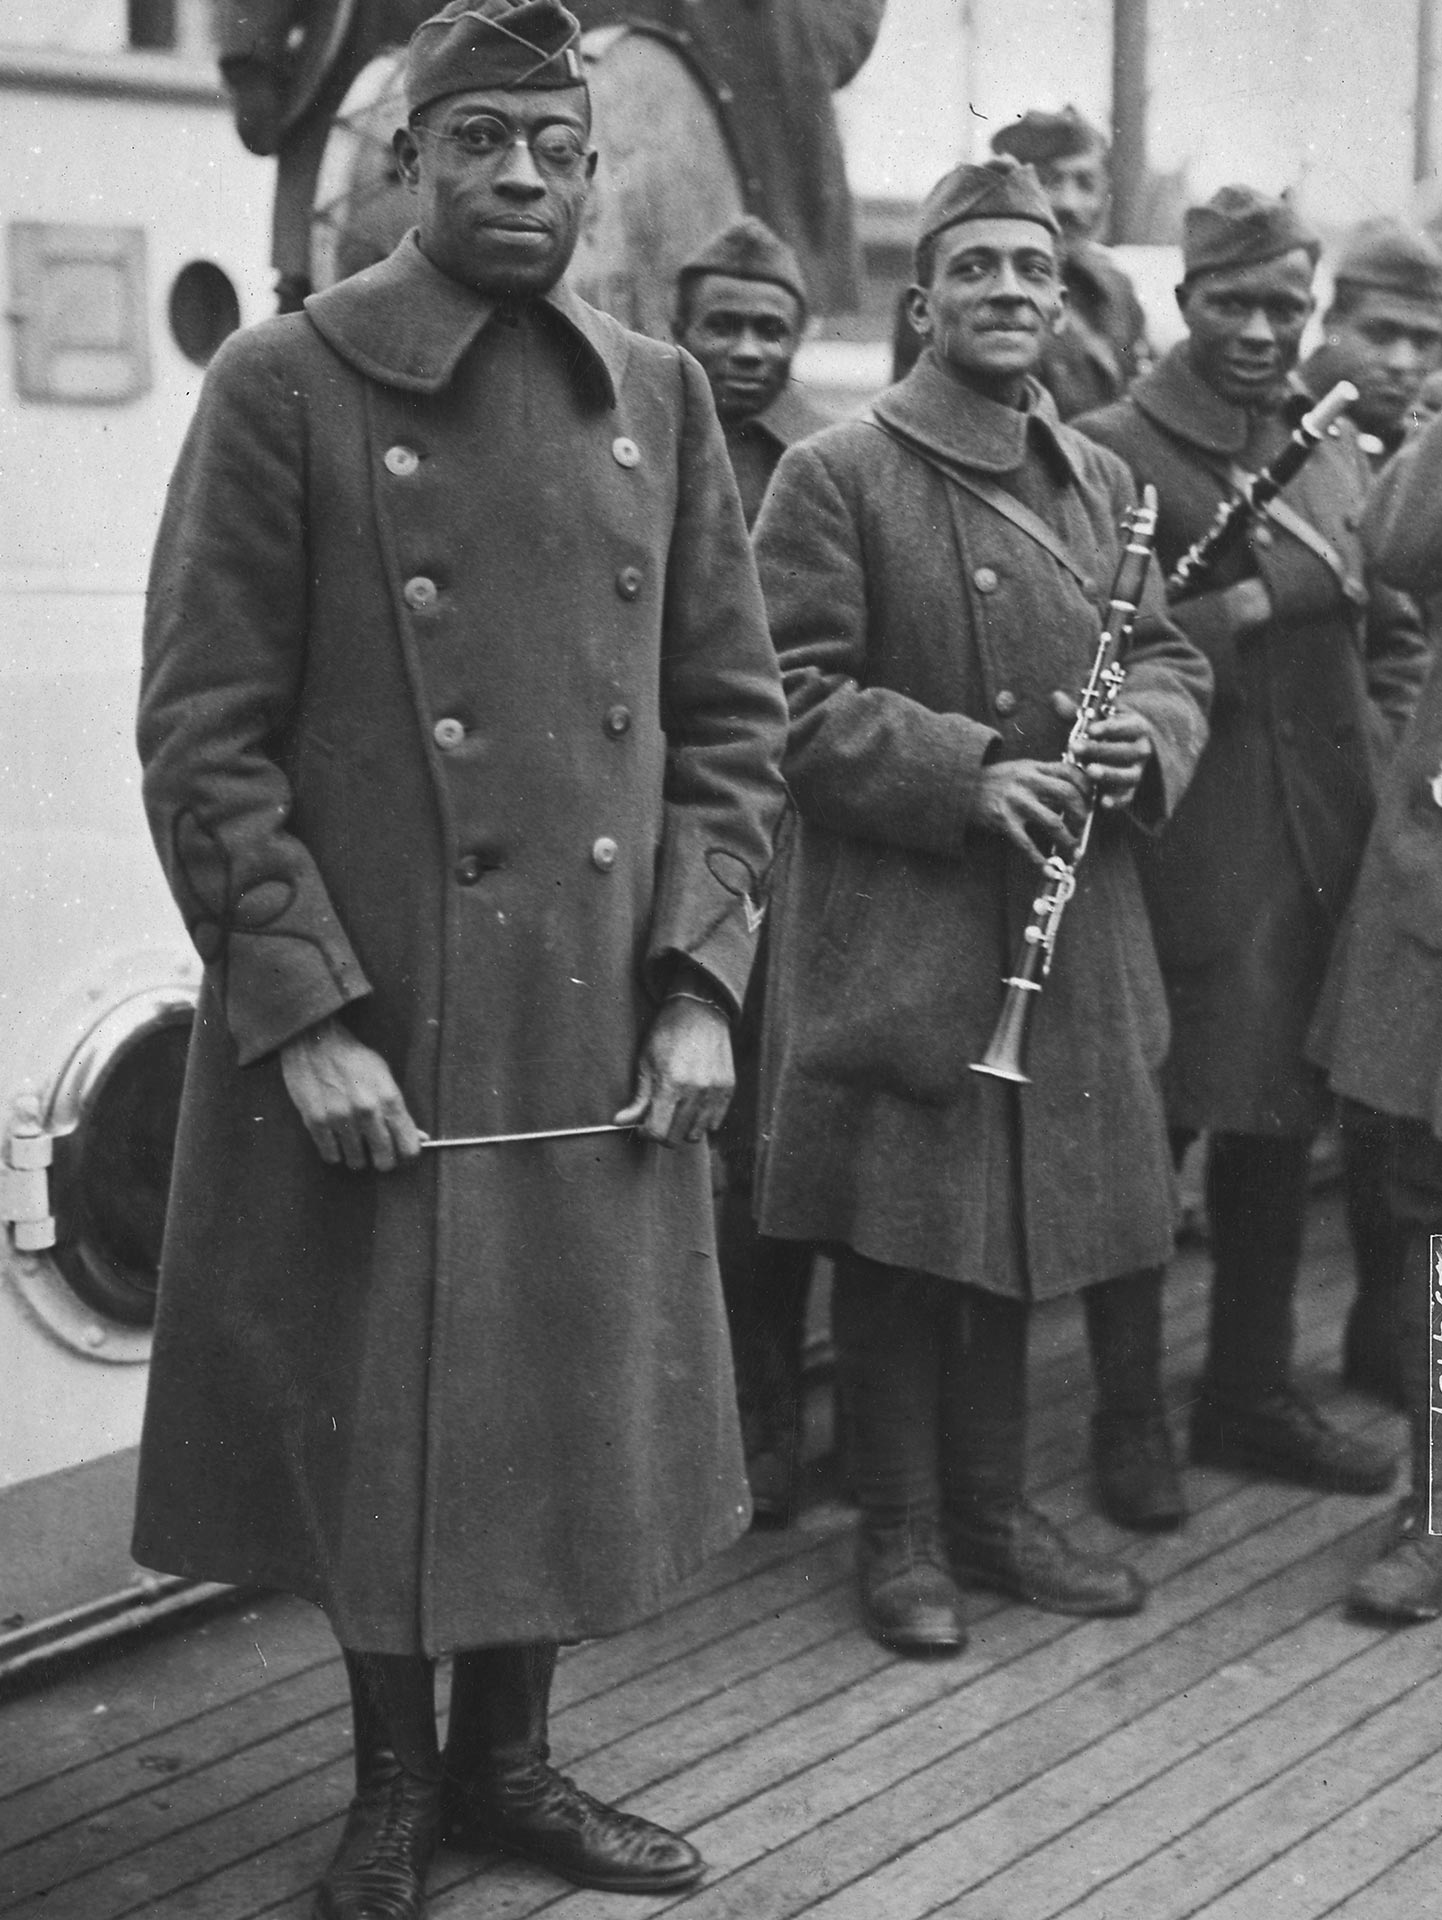 Jazz musician James Reese Europe and his band